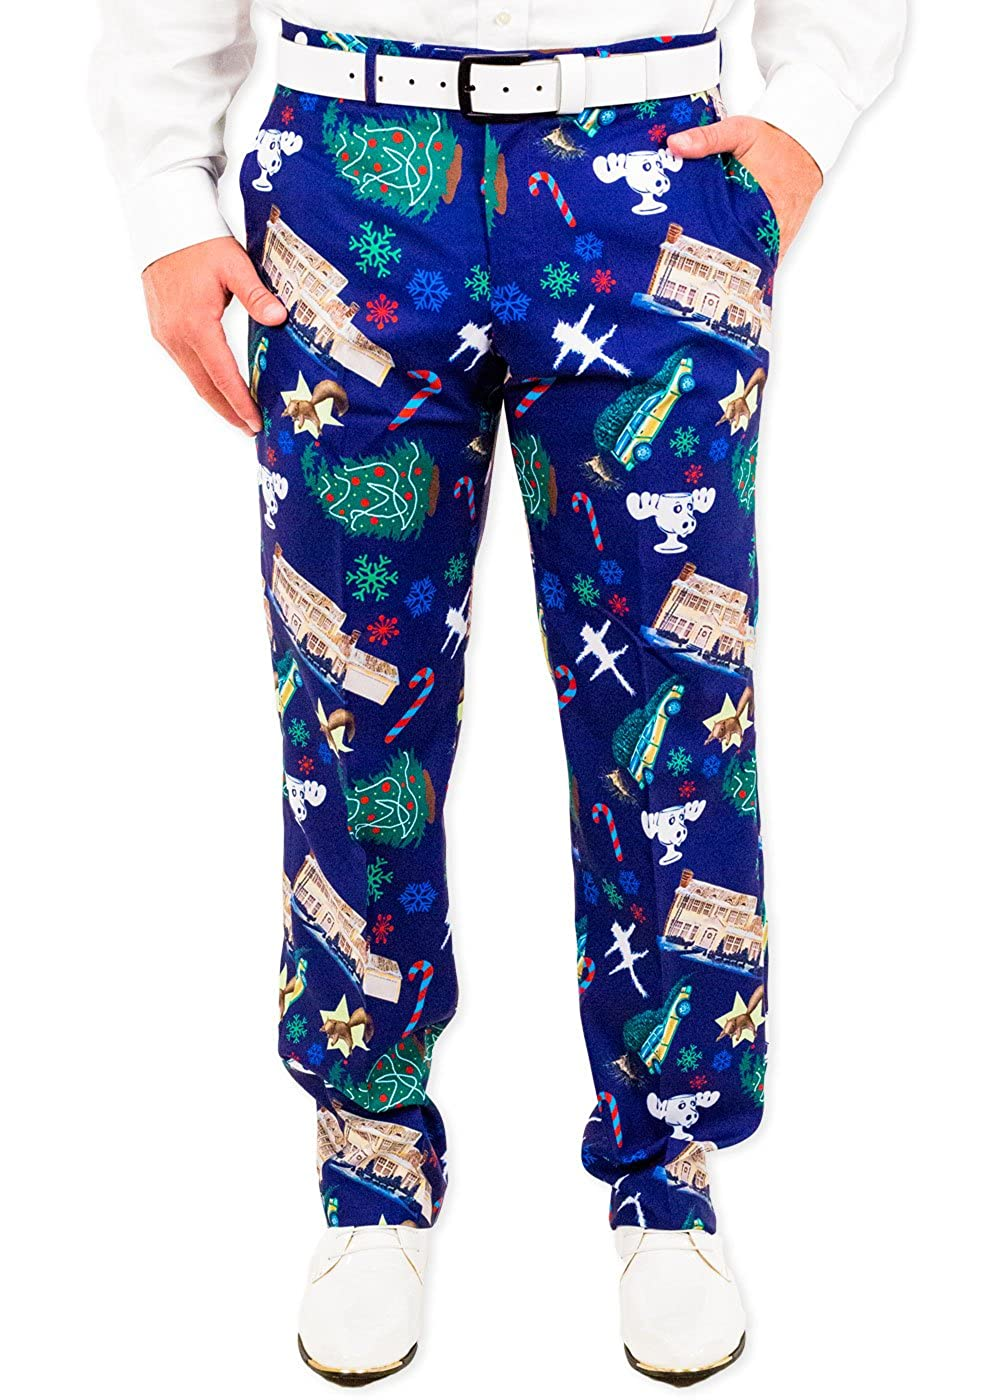 Festified Men's Christmas Vacation Griswoldacious Holiday Suit Pants In Navy